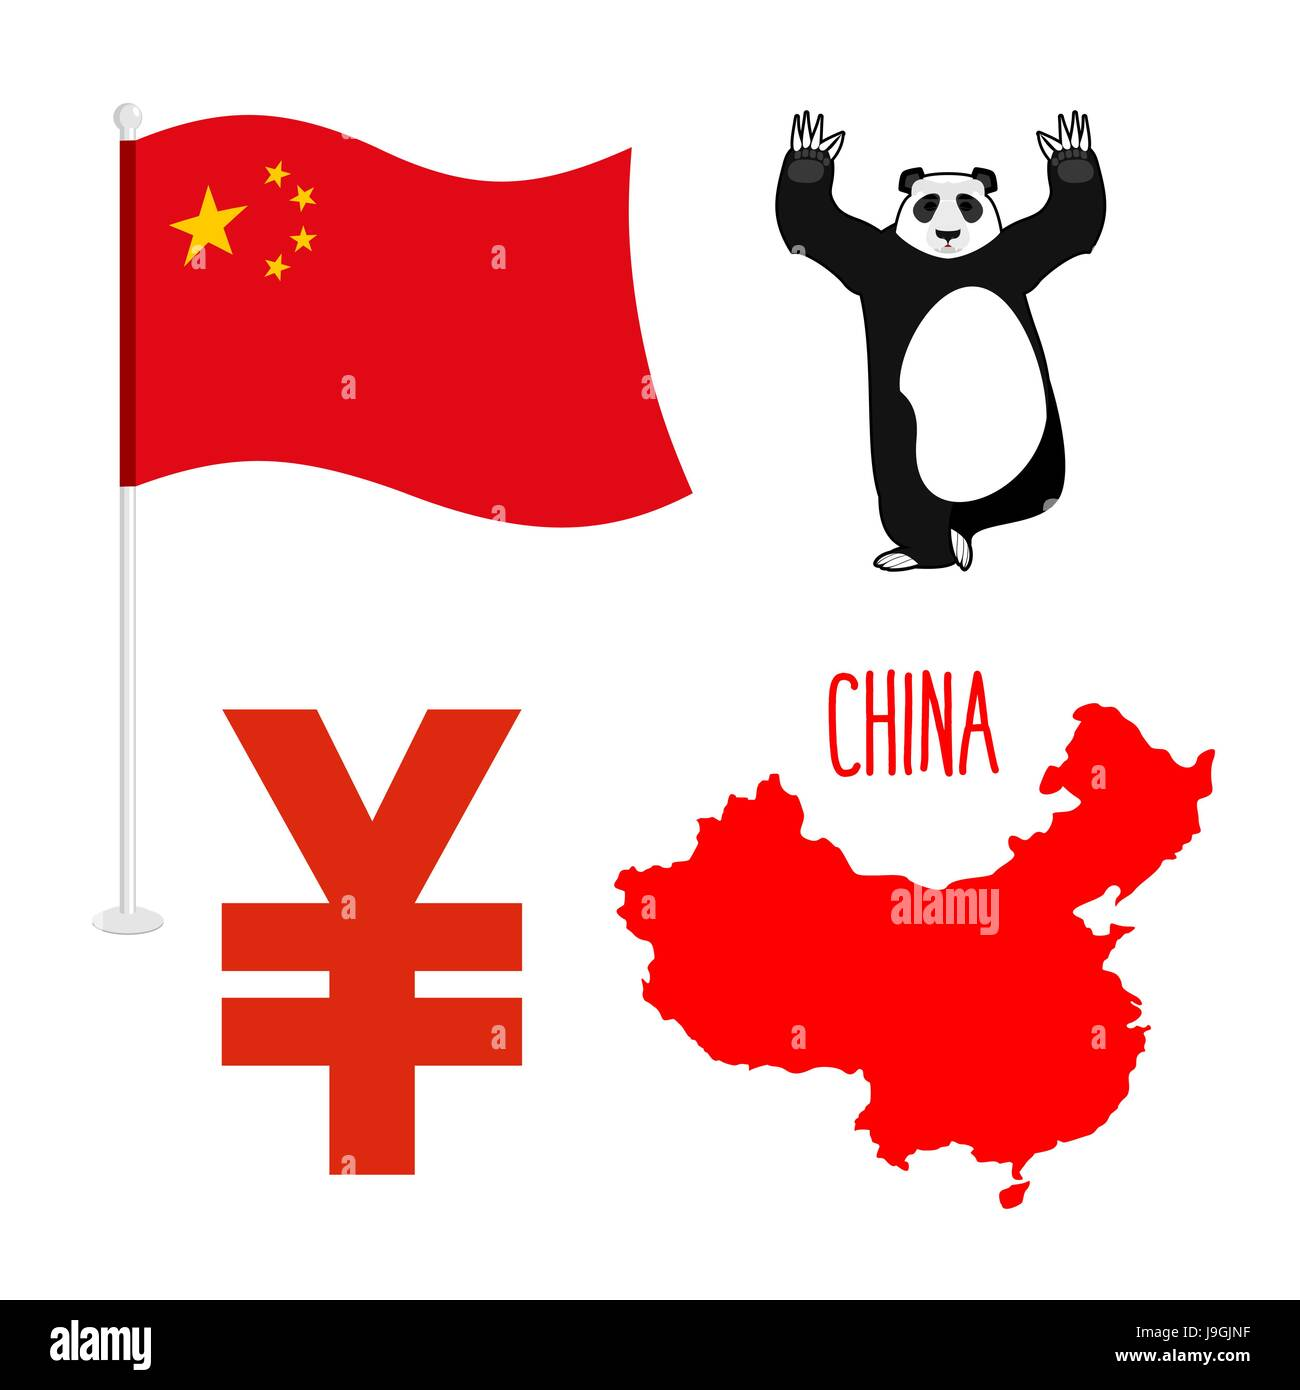 China symbol icons set map and flag of country sign of national china symbol icons set map and flag of country sign of national currency yen panda bear chinese national animal biocorpaavc Choice Image